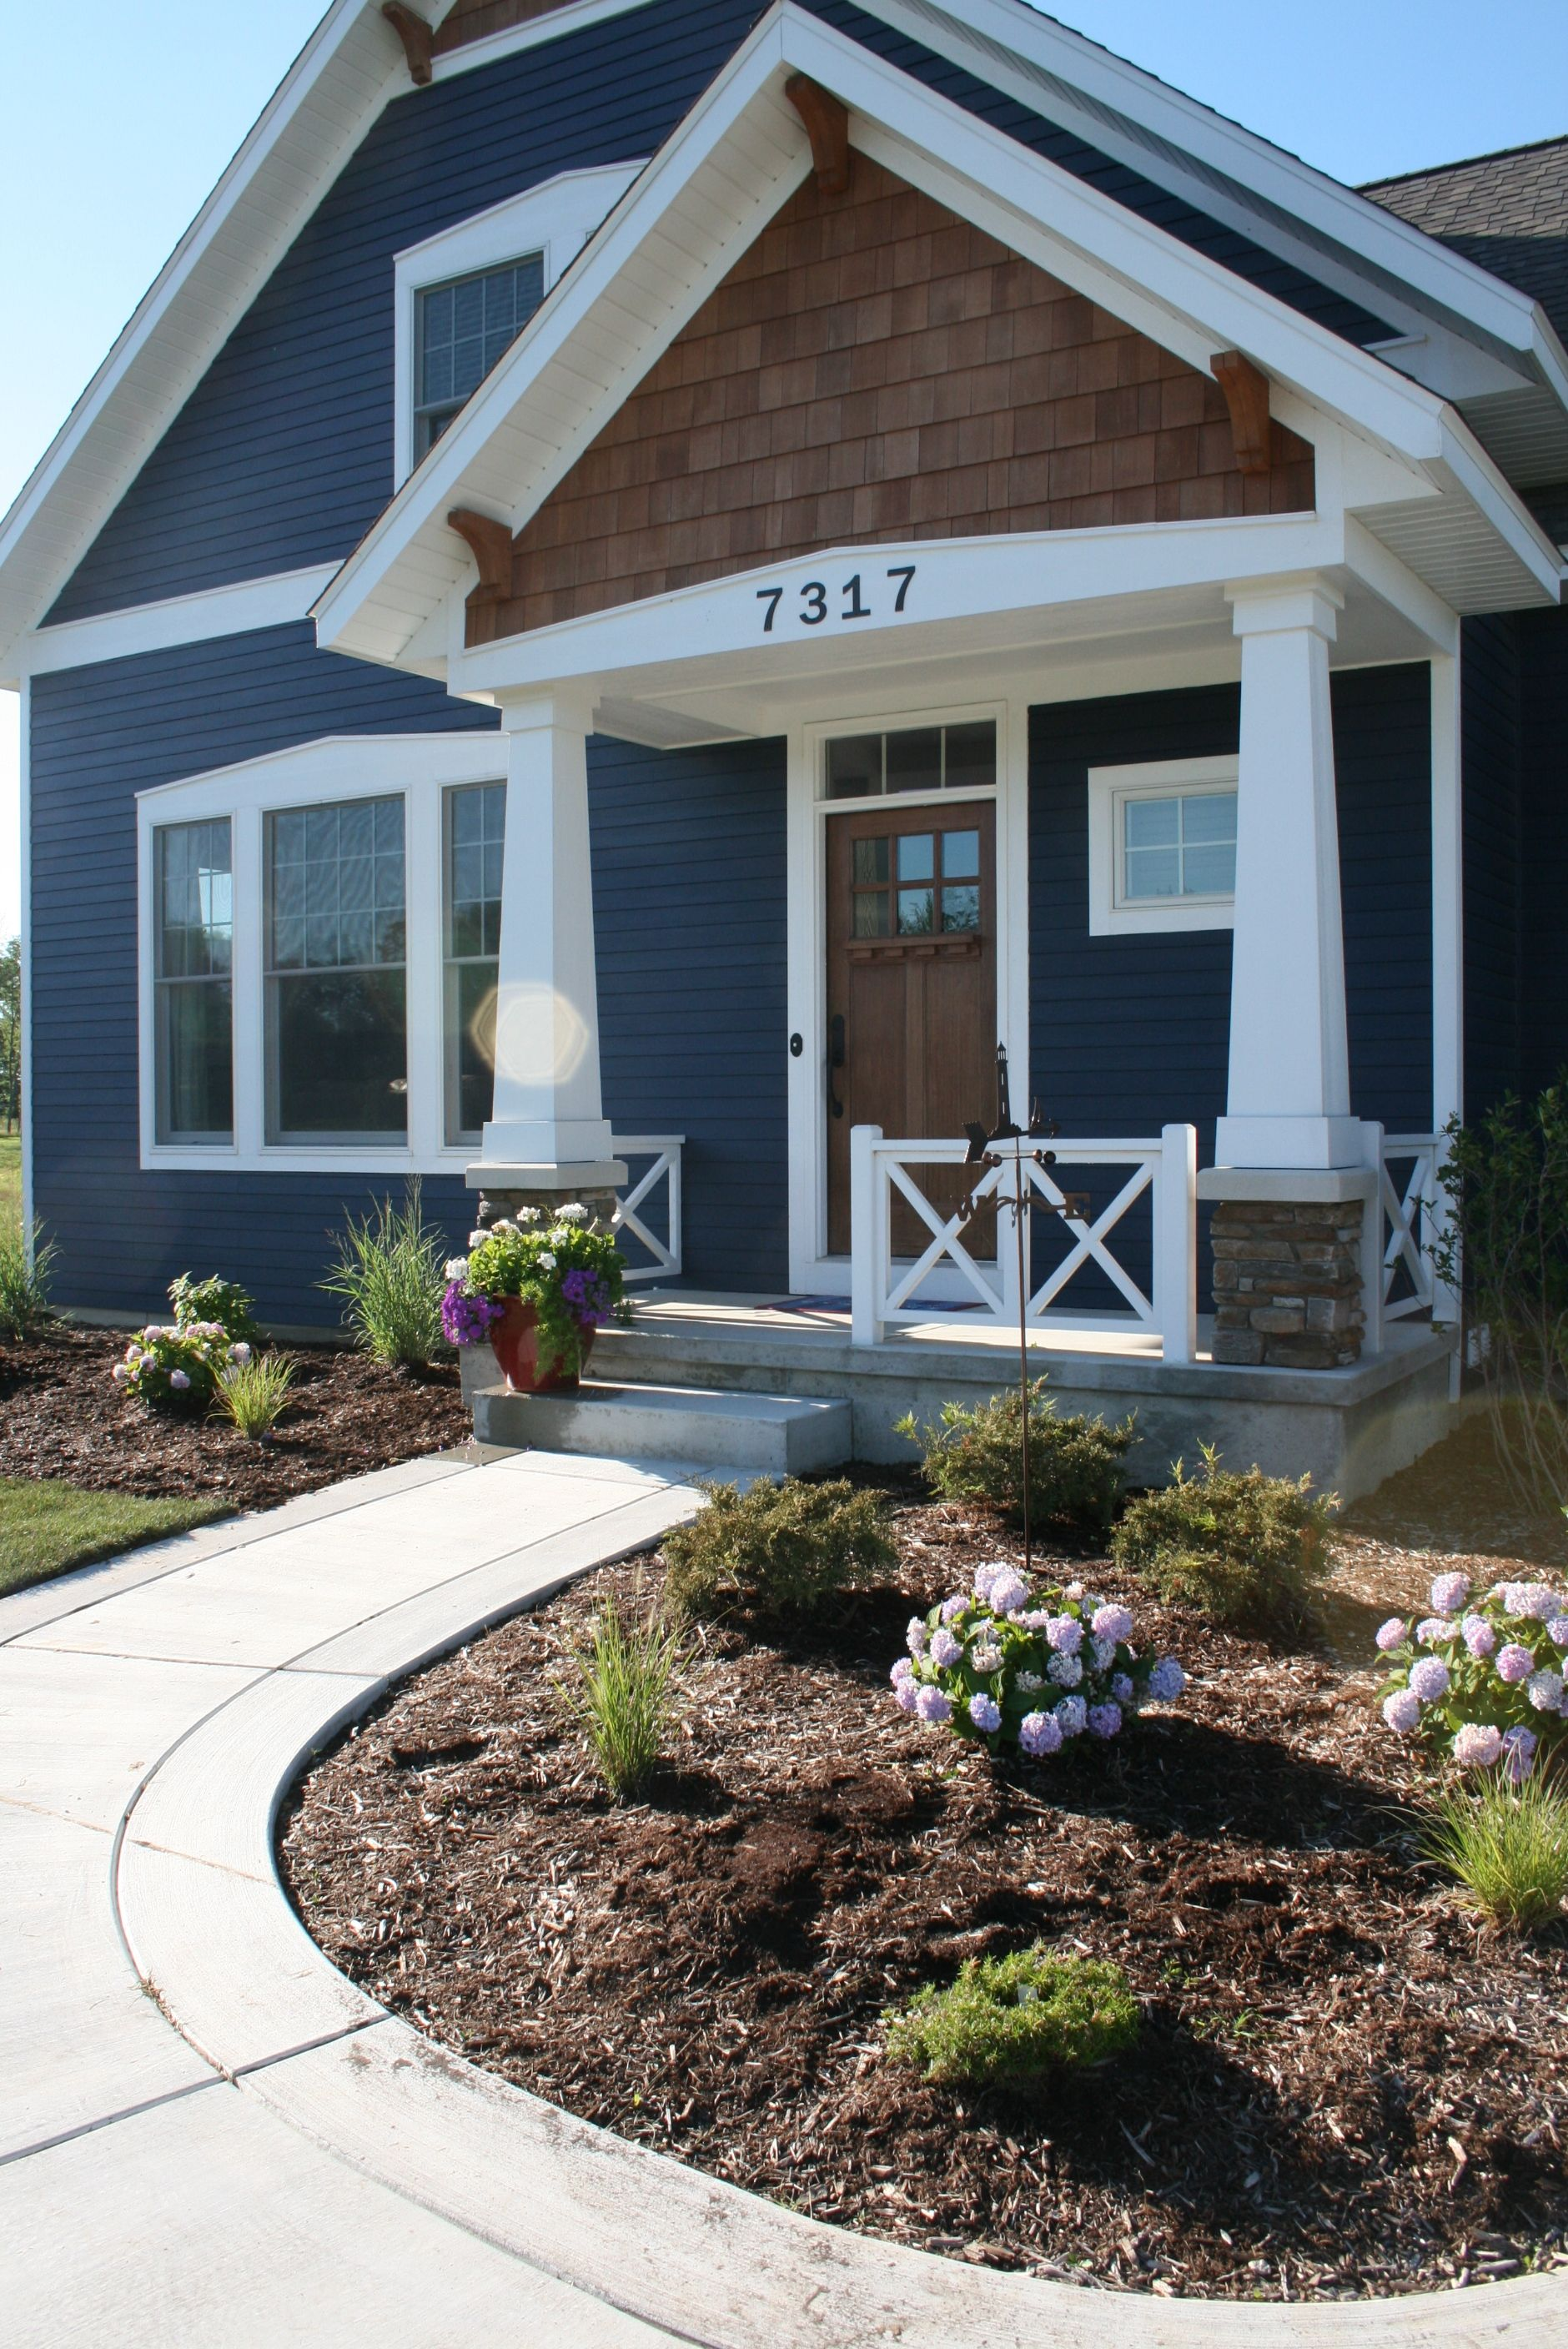 House colors on pinterest paint colors craftsman and james hardie - Exterior Of Homes Designs